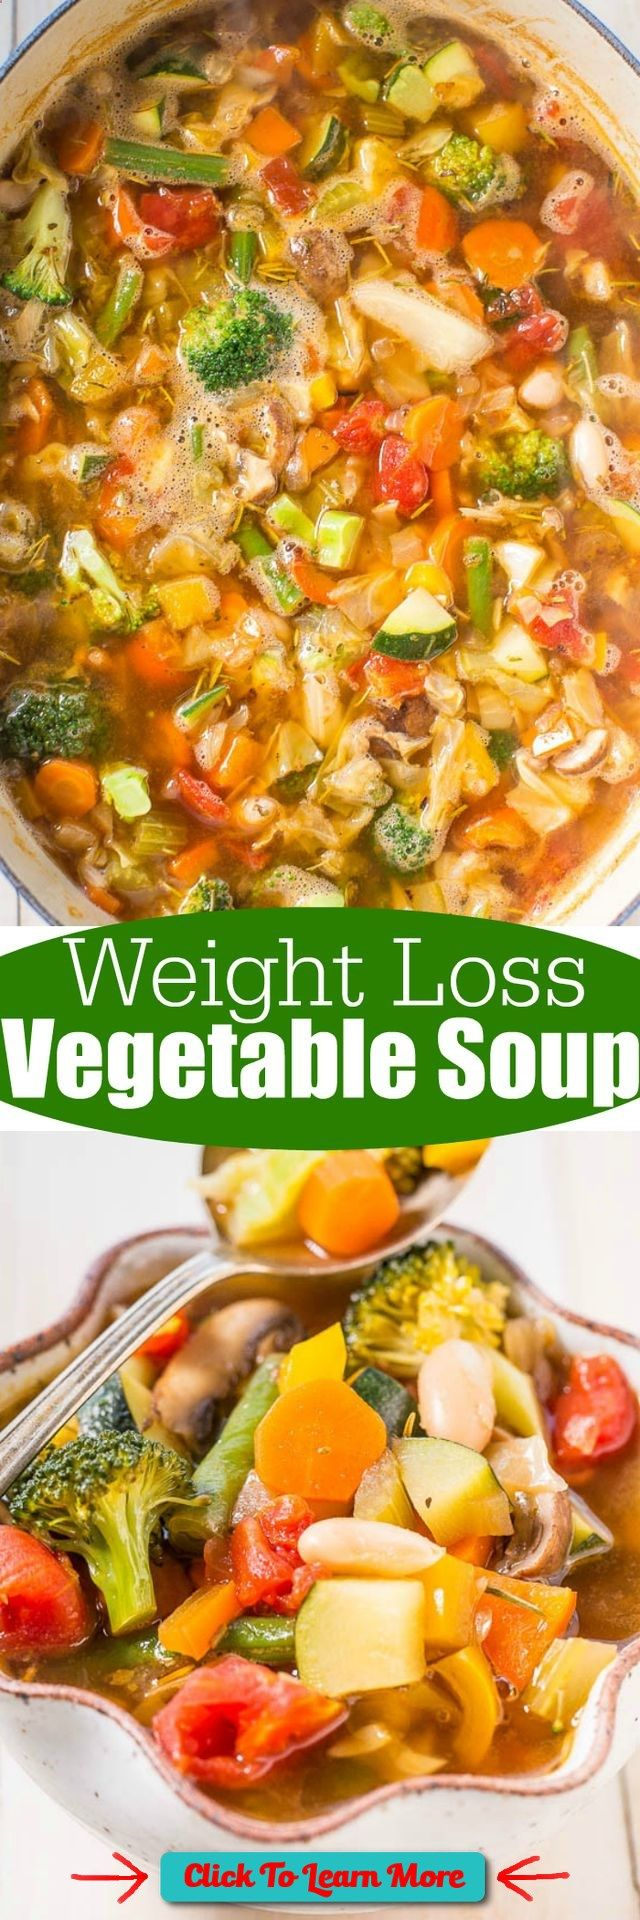 #FastestWayToLoseWeight by EATING, Click to learn more, How are those New Year's resolutions going? This soup will help anyone who's fallen off the wagon, or who never got on the wagon, get back on. It may not be a magic bullet for weight loss, but it's a , #HealthyRecipes, #FitnessRecipes, #BurnFatRecipes, #WeightLossRecipes, #WeightLossDiets